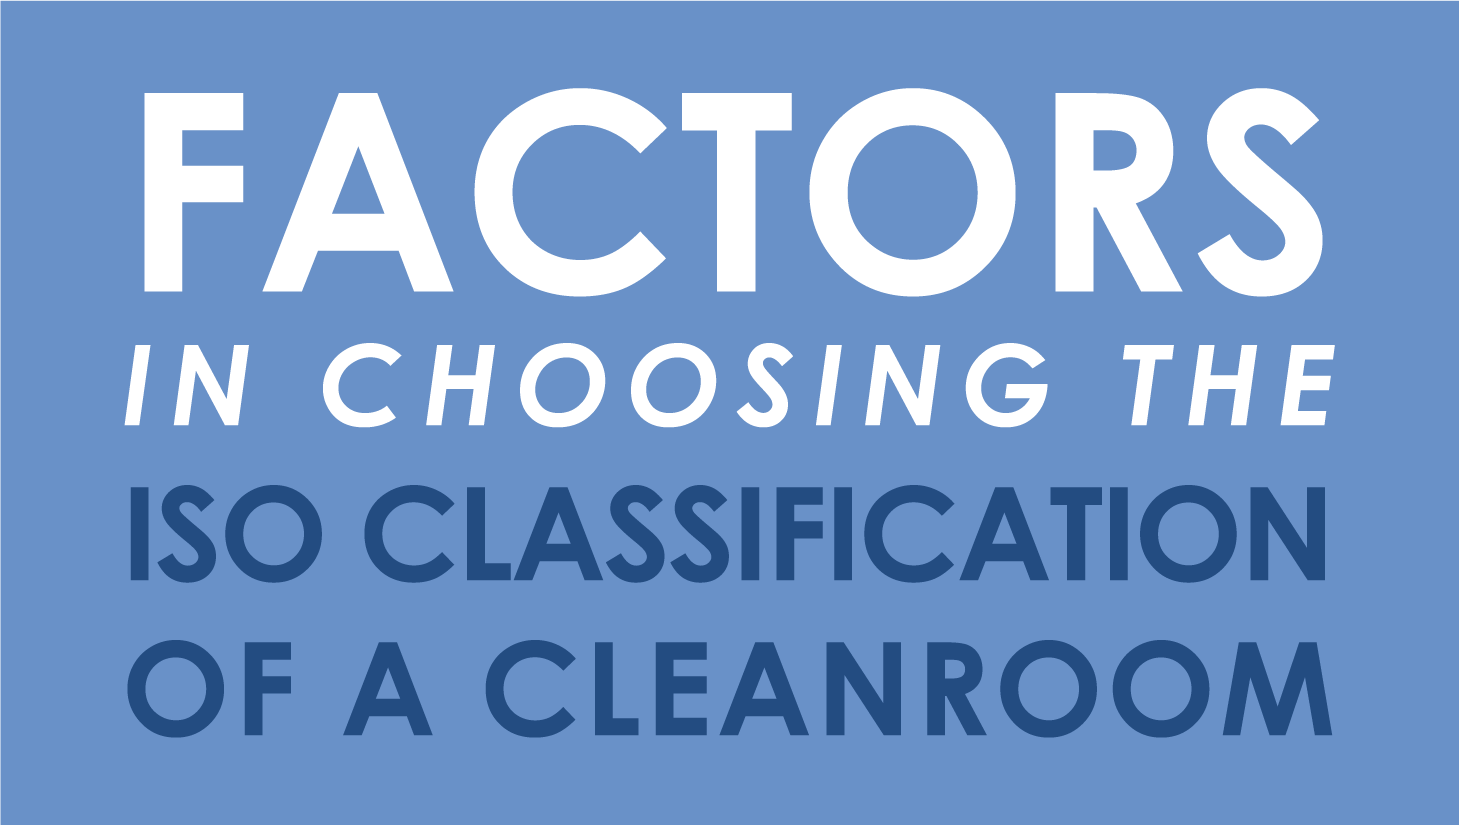 LabHub | Factors in choosing the ISO Classification of a Cleanroom